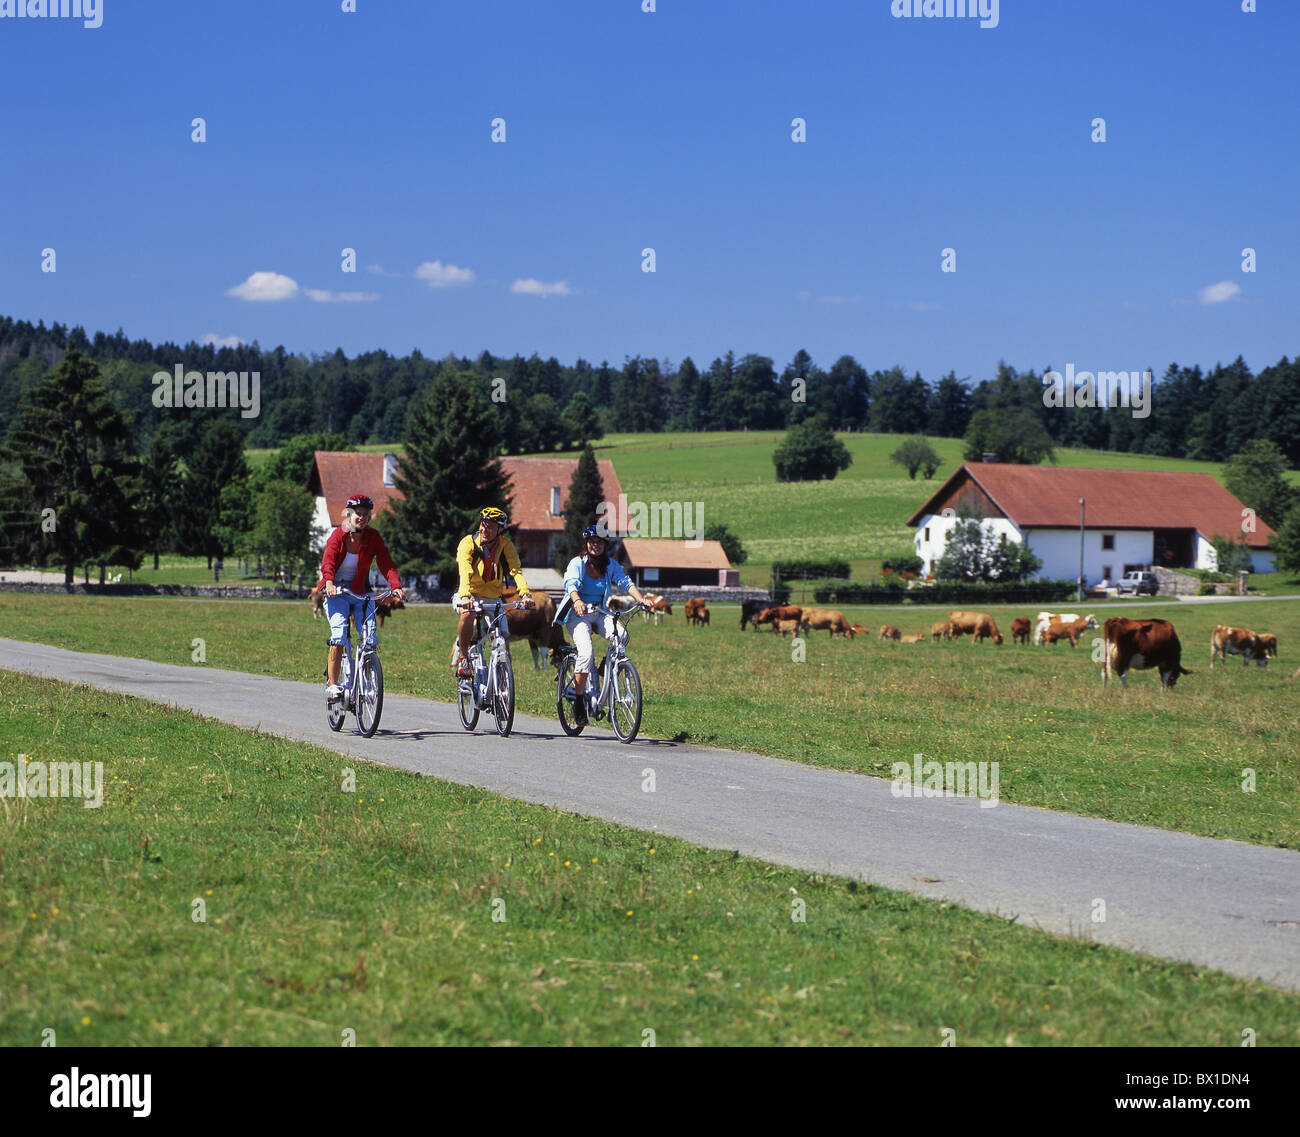 bicycle bike electric Flyer Freiberge group Jura scenery landscape spare sports summer Switzerland Euro - Stock Image